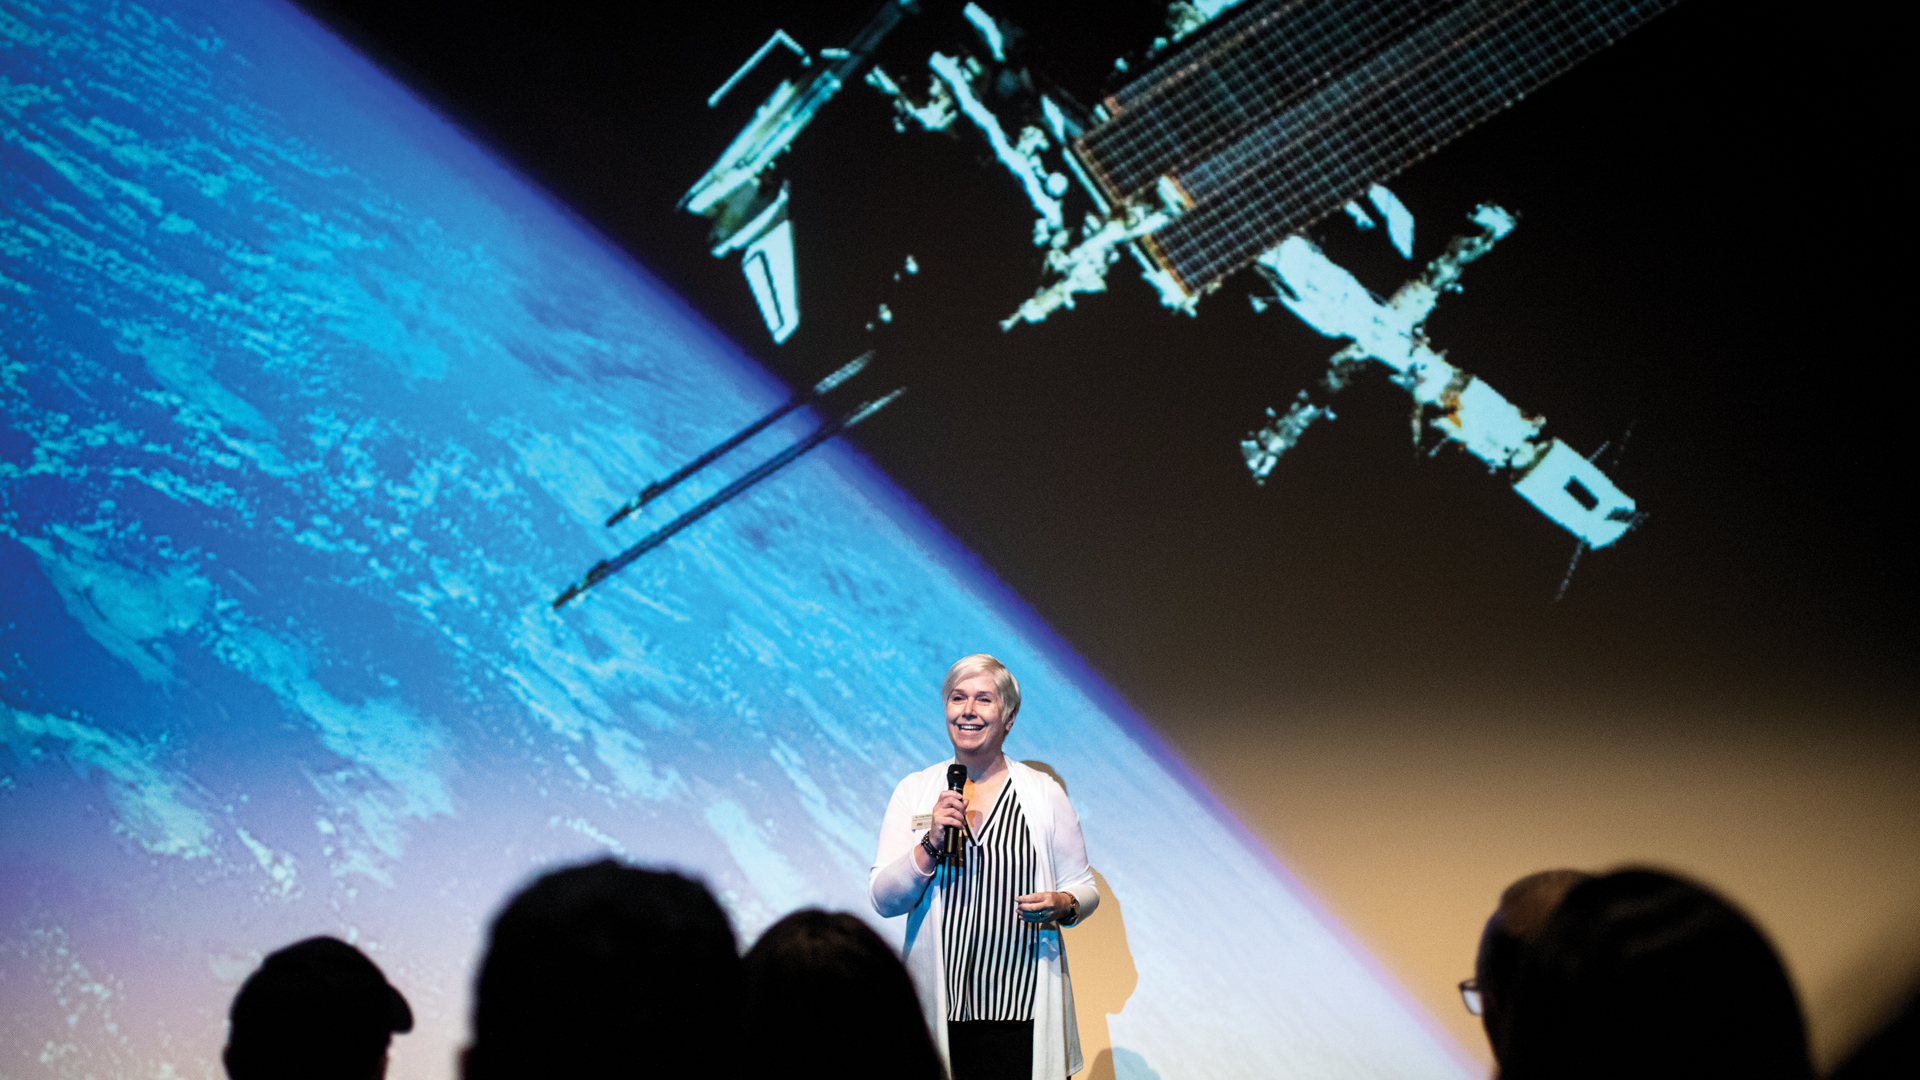 Envisioning the future of space